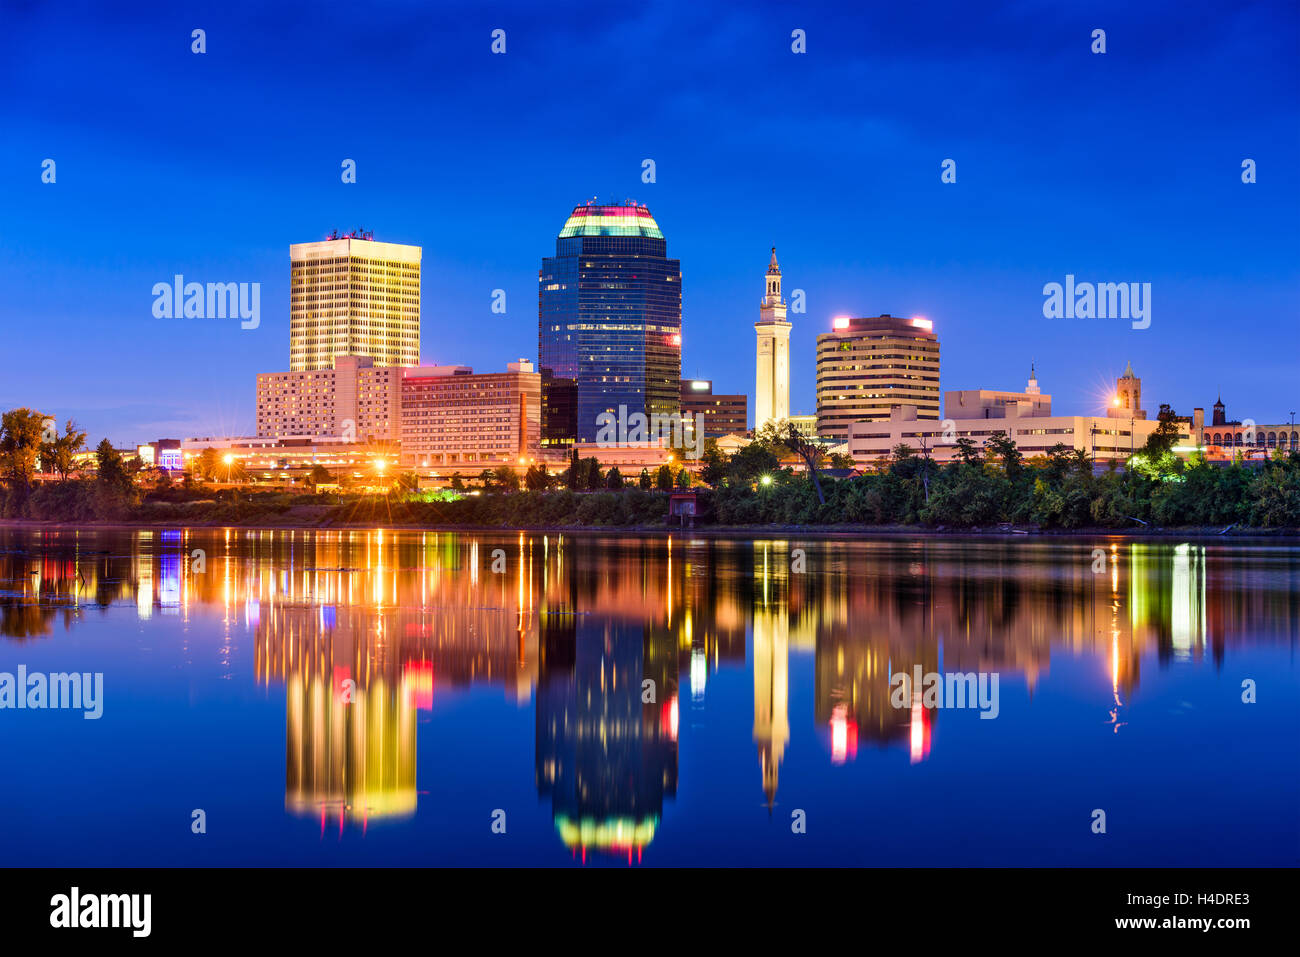 Downtown Springfield Missouri Skyline Wiring Diagrams 10 Pickup The Tail Lightswiring Harnessback Togetherwire Colors Stock Photos Rh Alamy Com St Louis